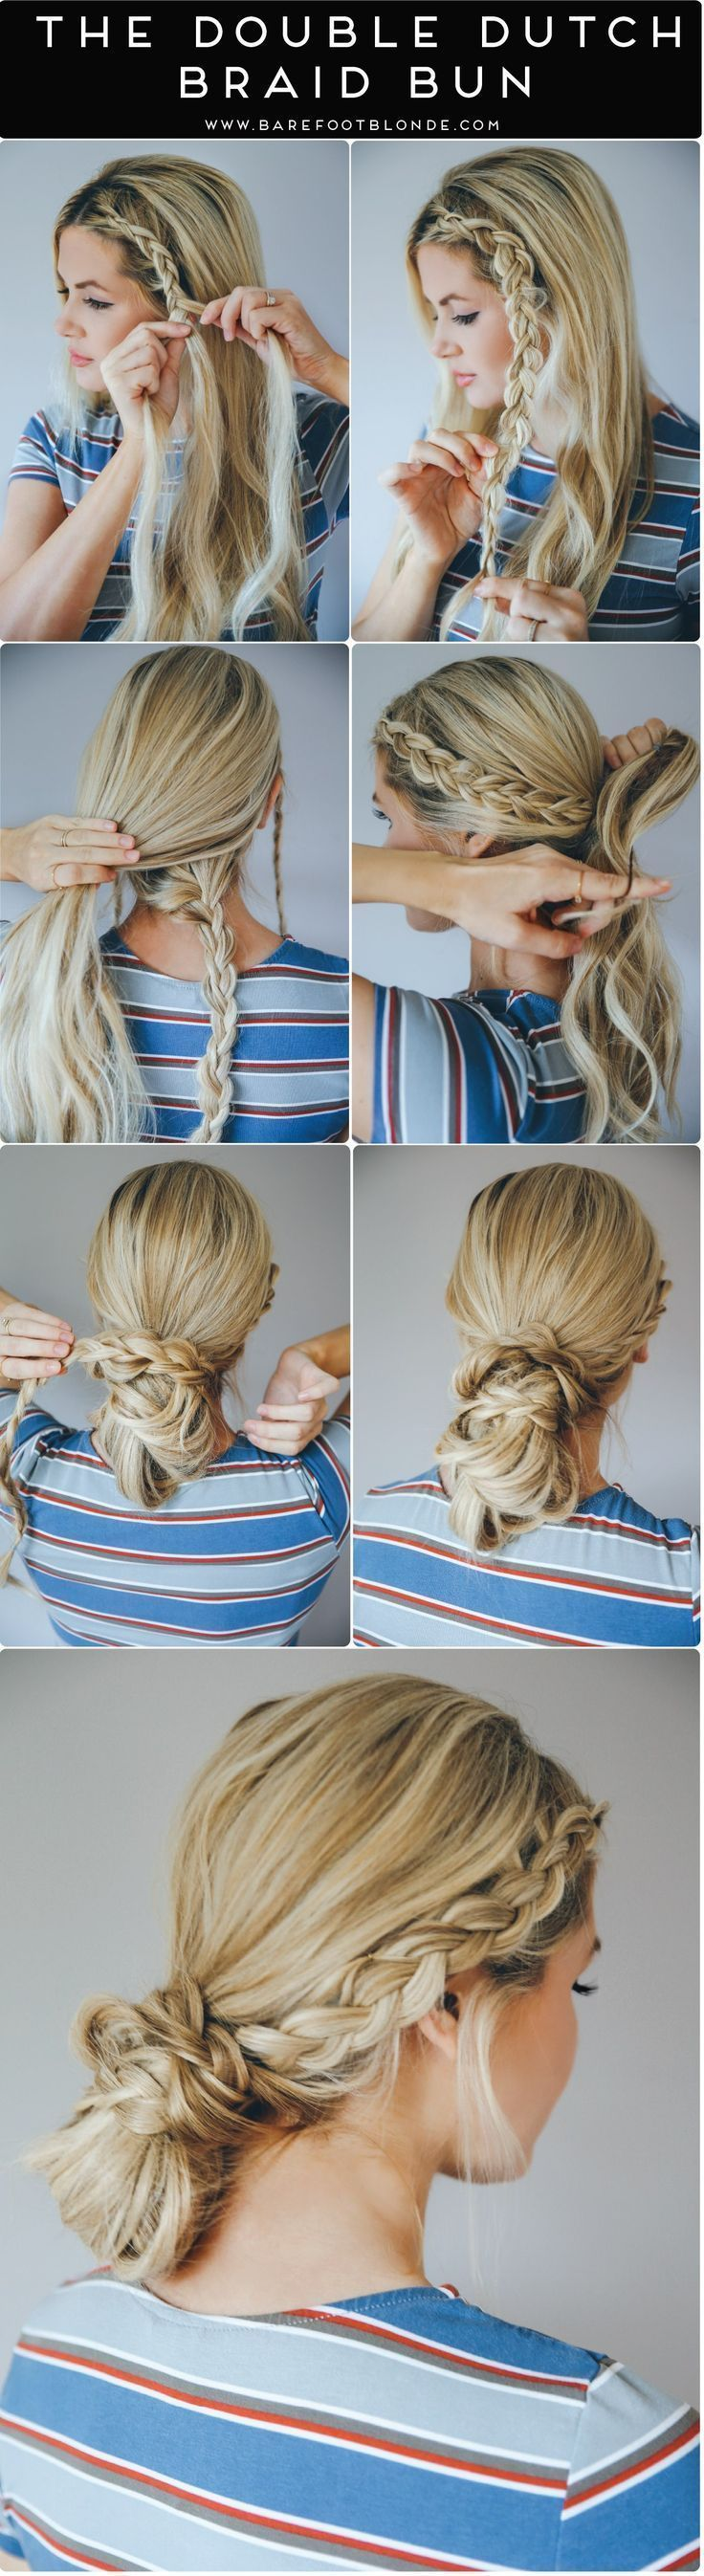 easy braids that will fix any bad hair day bad hair easy and